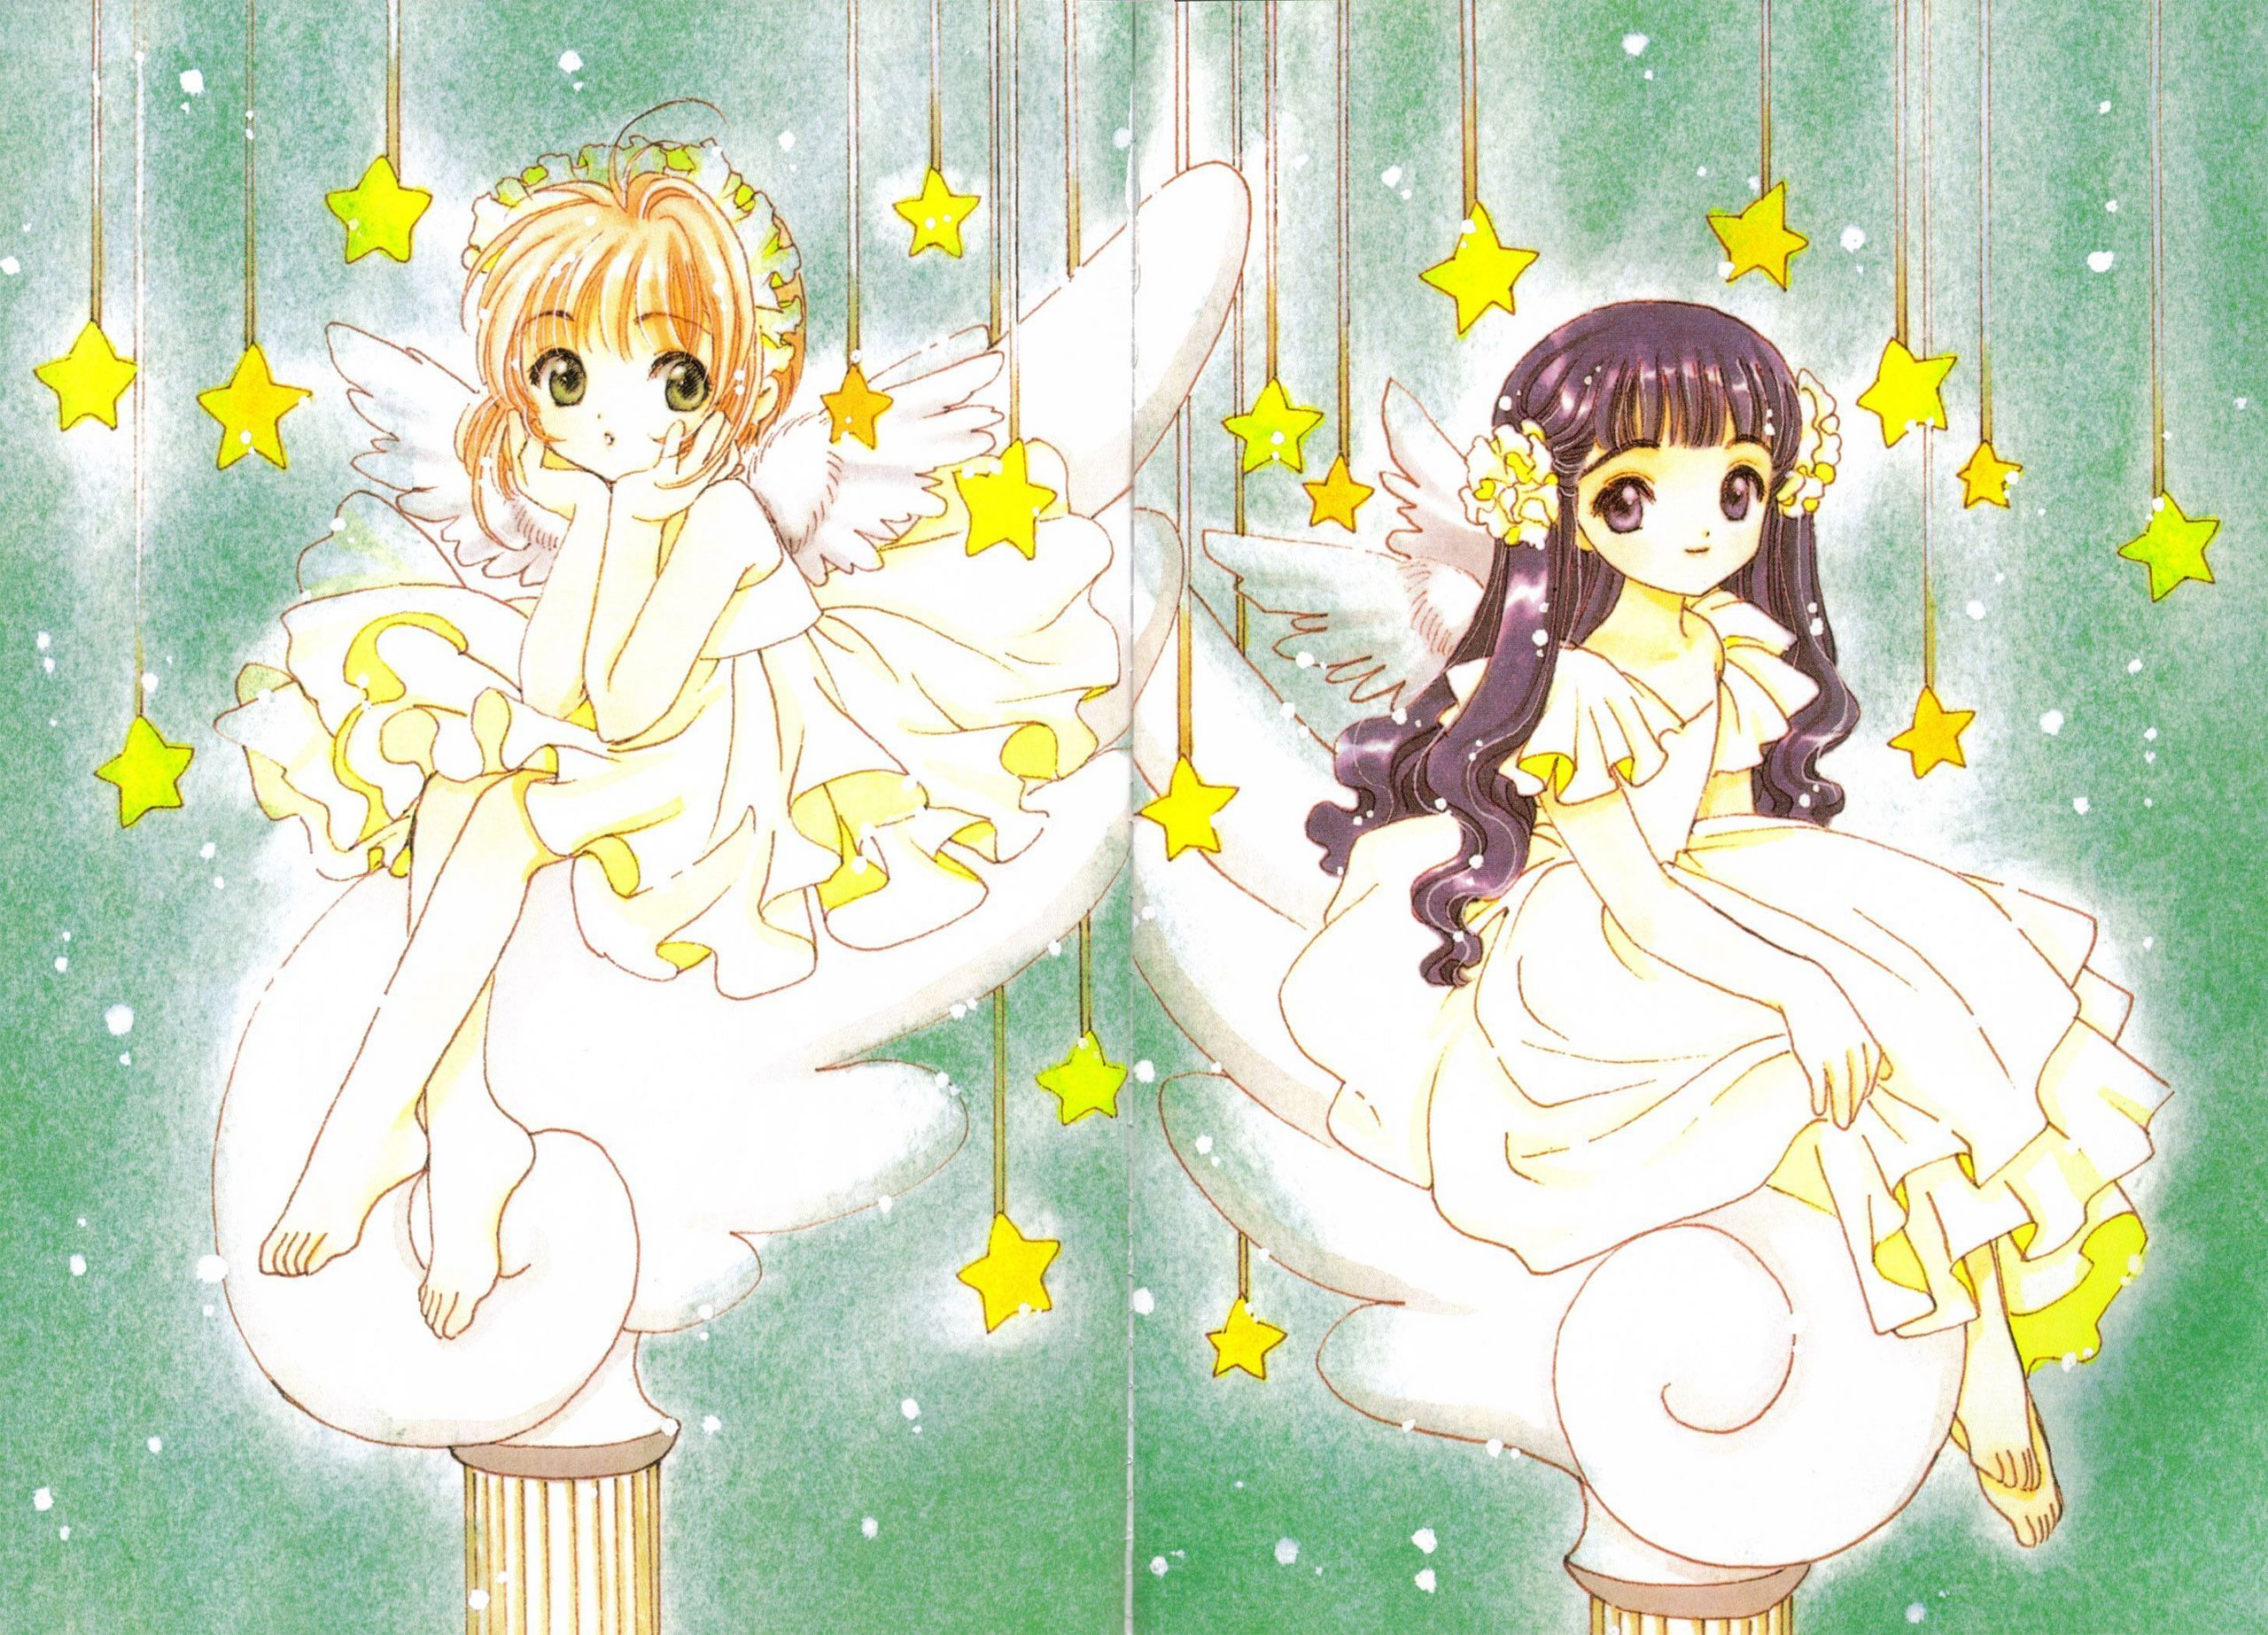 tomoyo cardcaptor sakura - photo #30